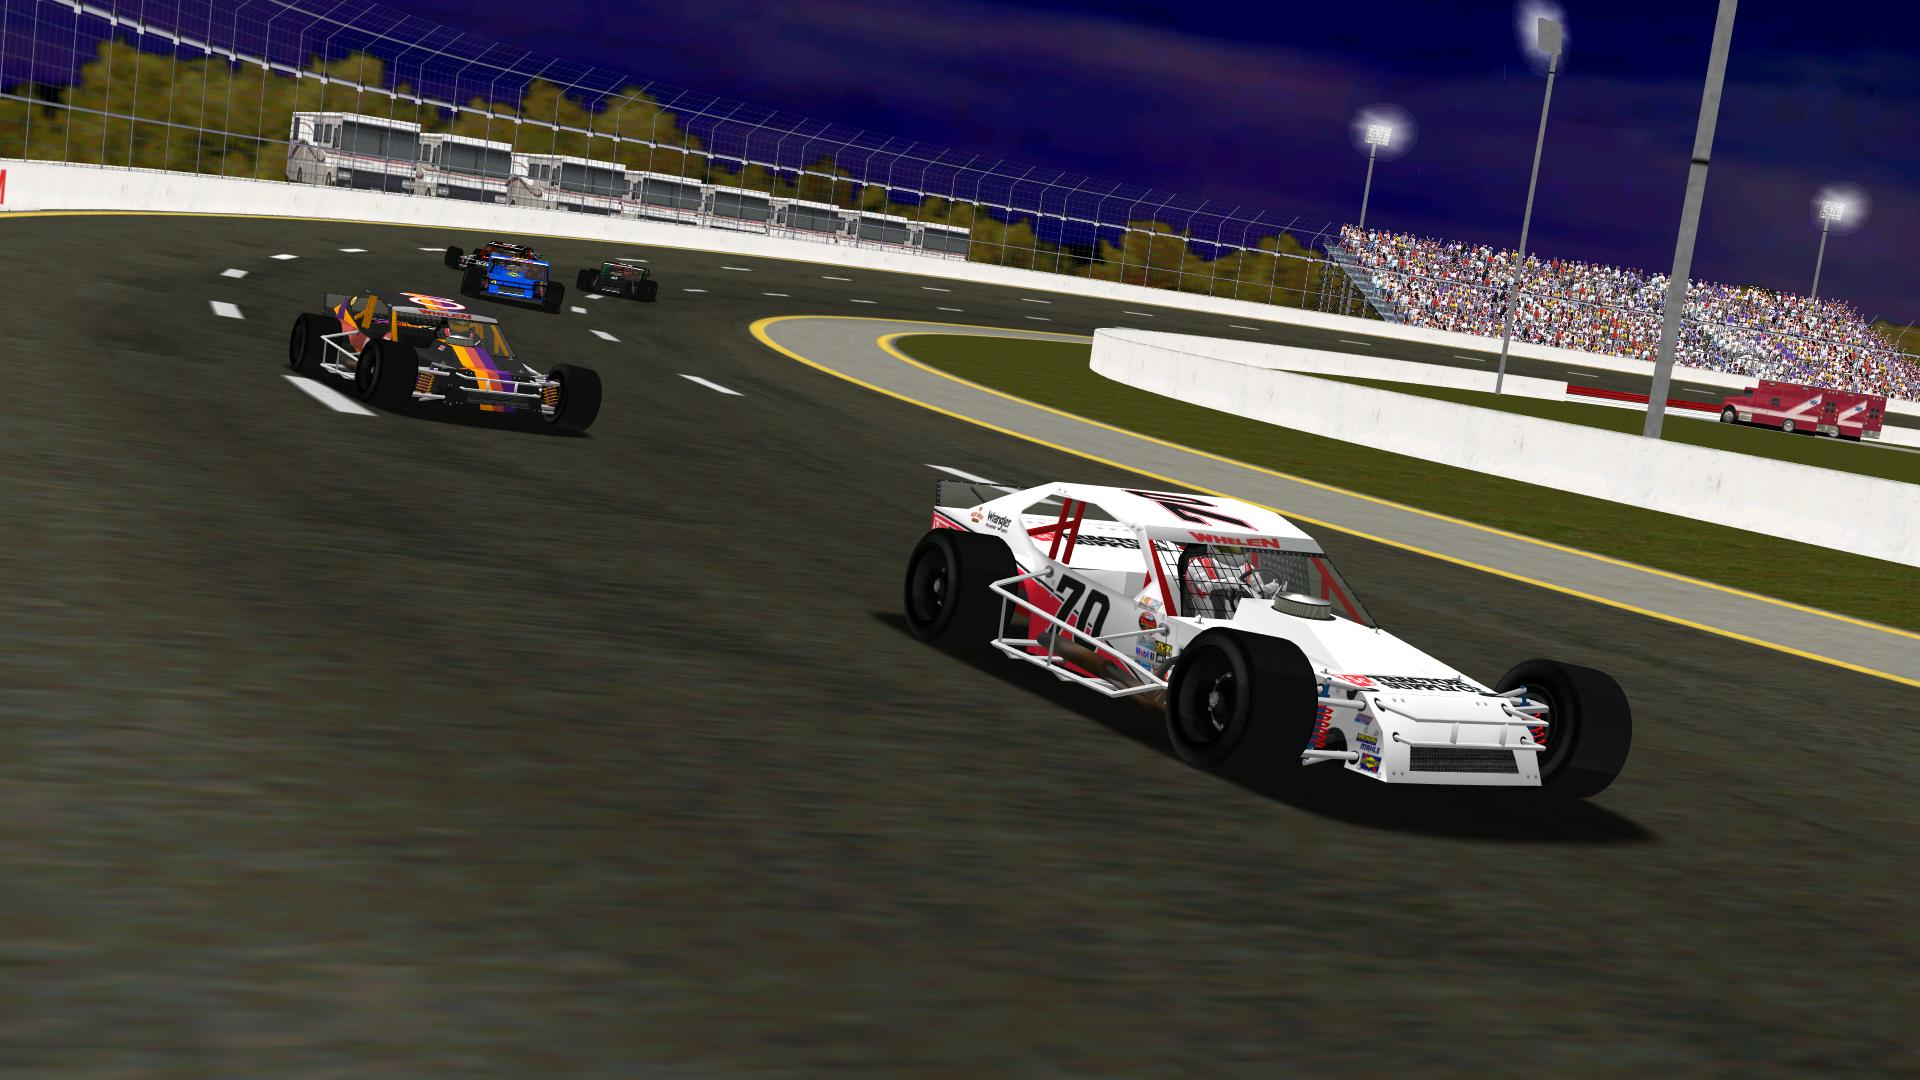 puttzracer chases lepage71 through turn two shortly after a restart. (NHMA)